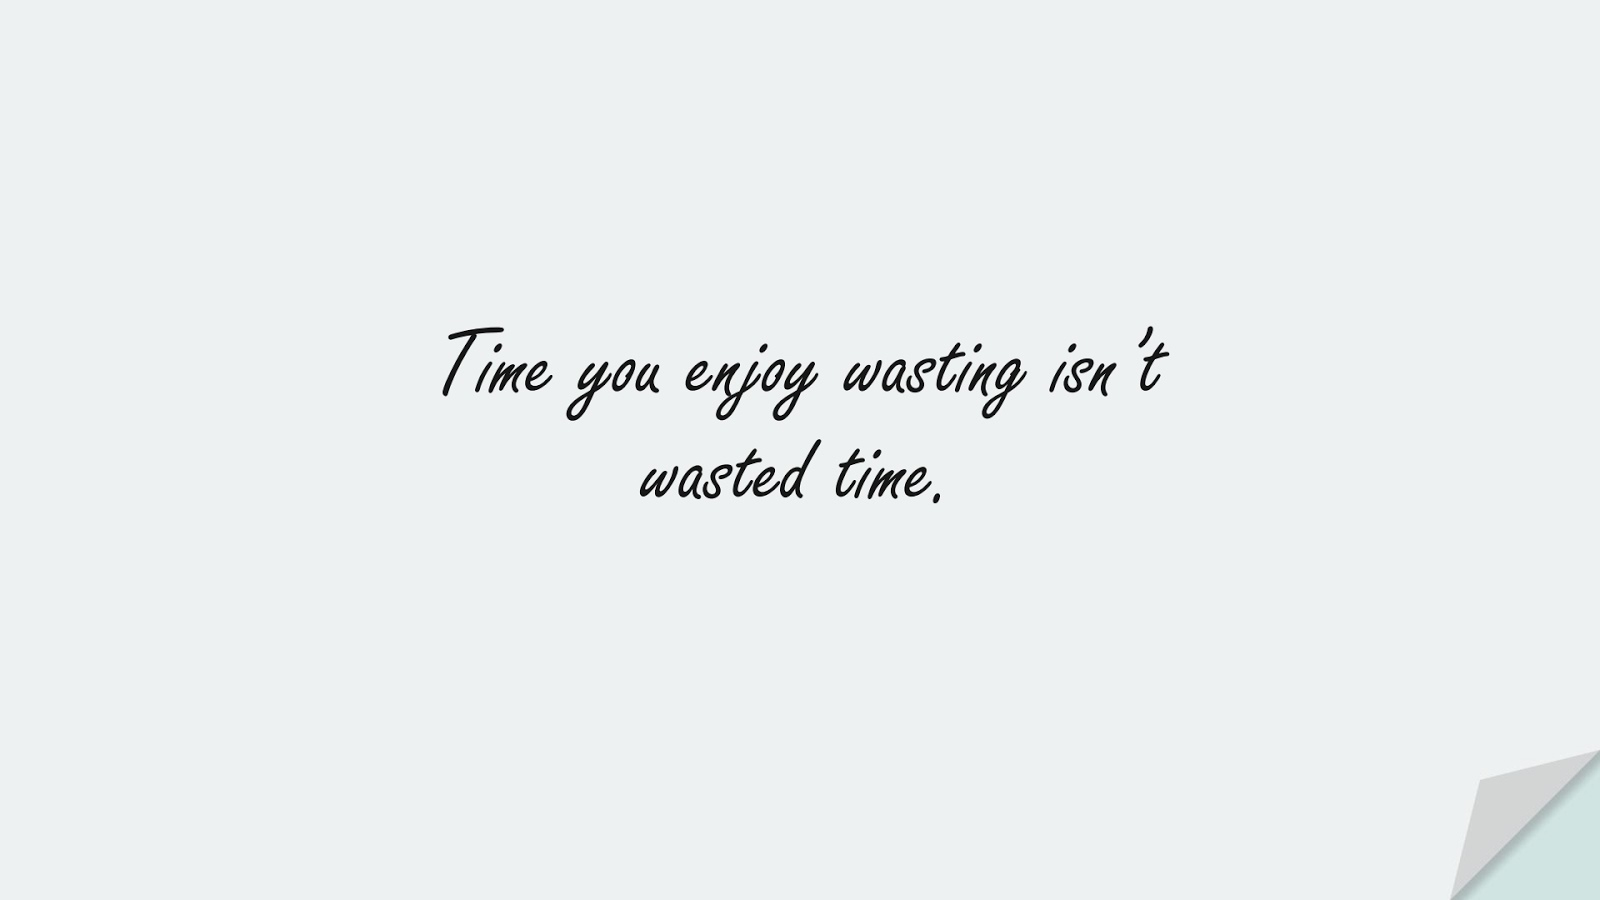 Time you enjoy wasting isn't wasted time.FALSE